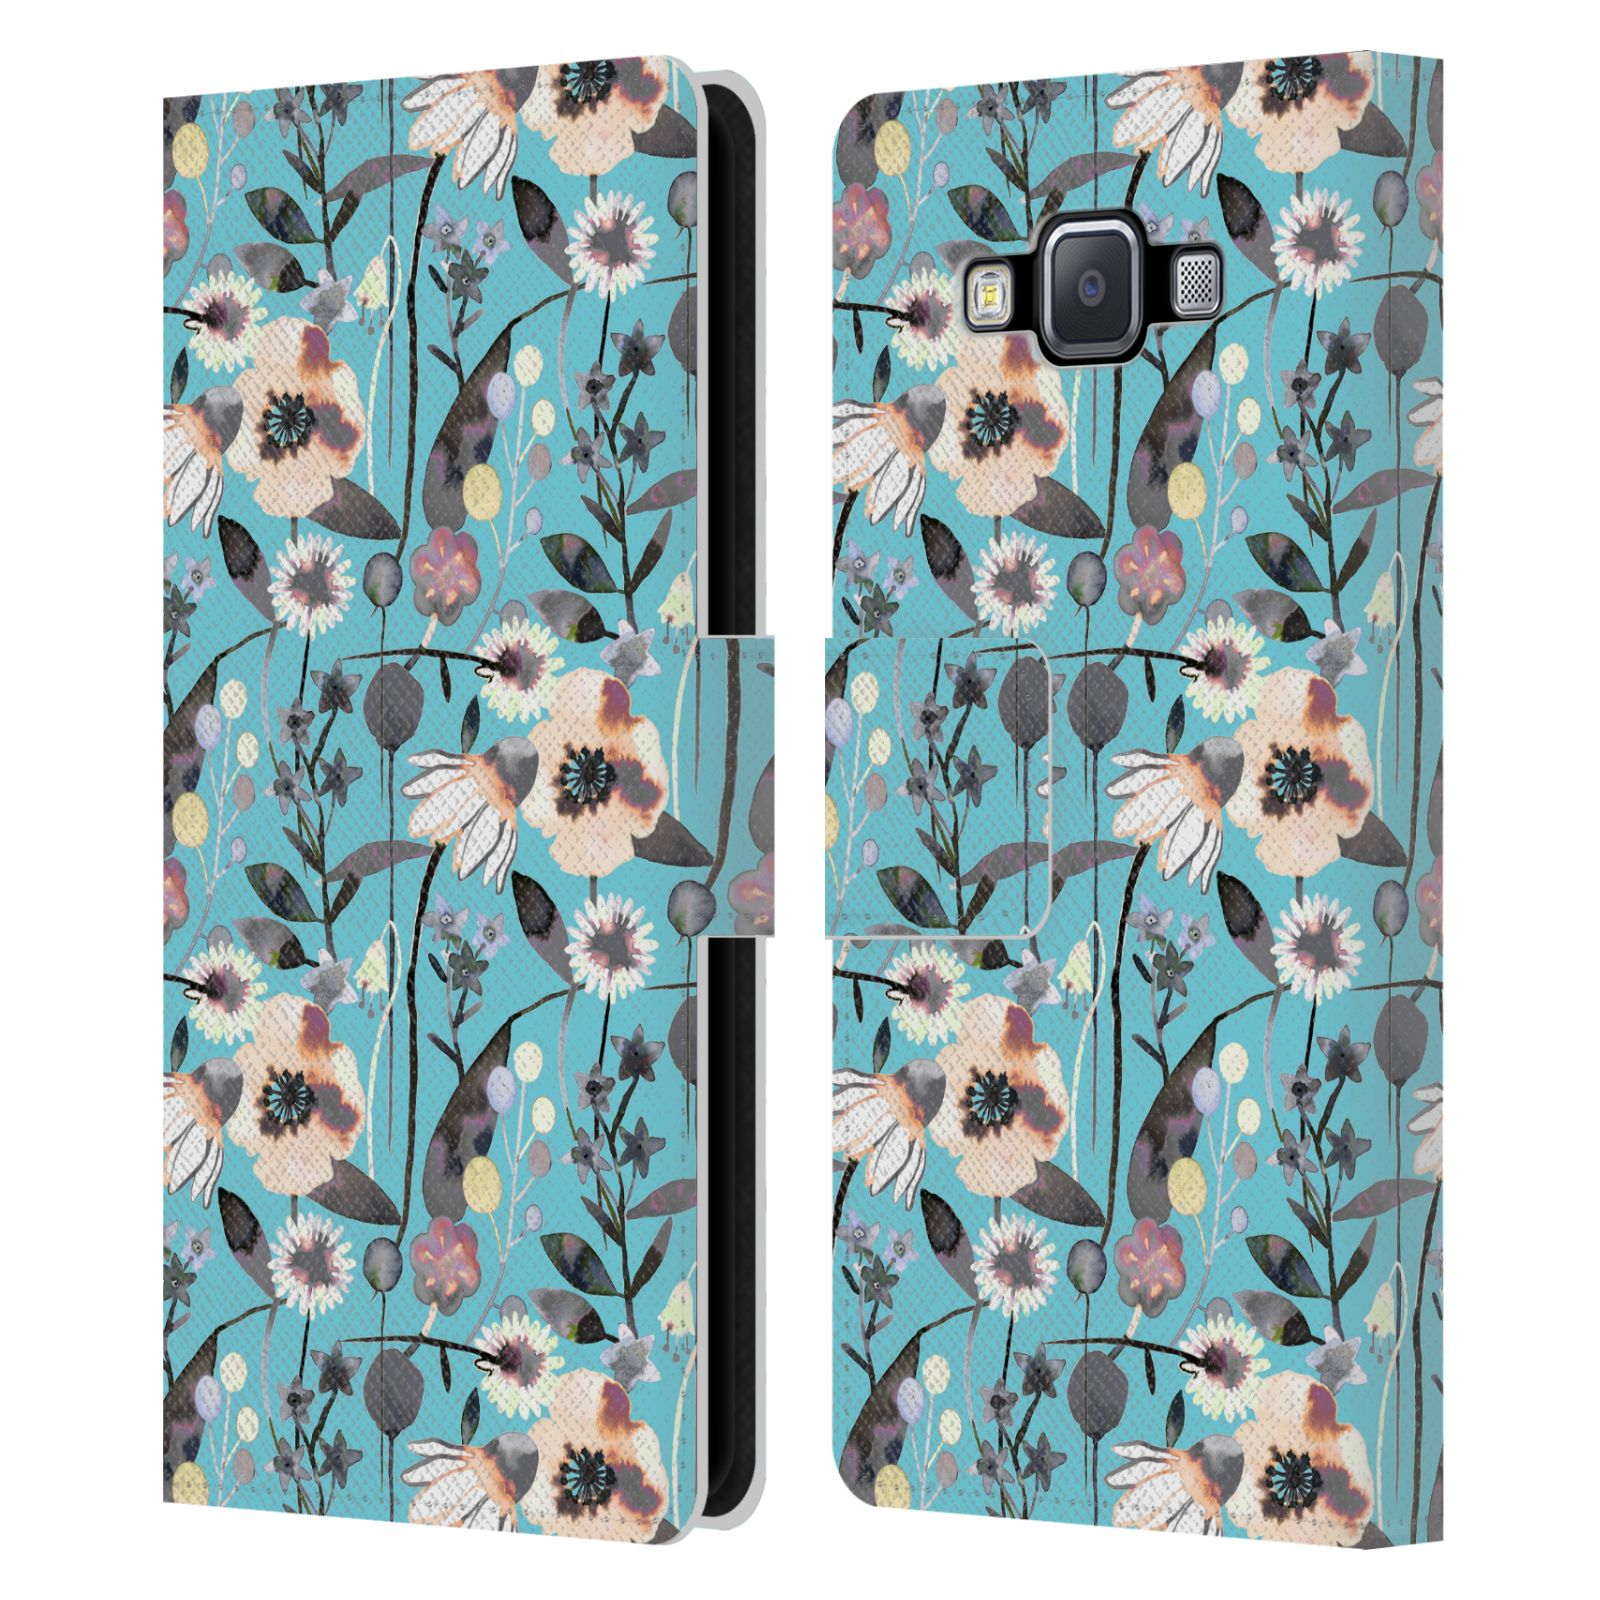 OFFICIAL-NINOLA-BOTANICAL-LEATHER-BOOK-WALLET-CASE-COVER-FOR-SAMSUNG-PHONES-2